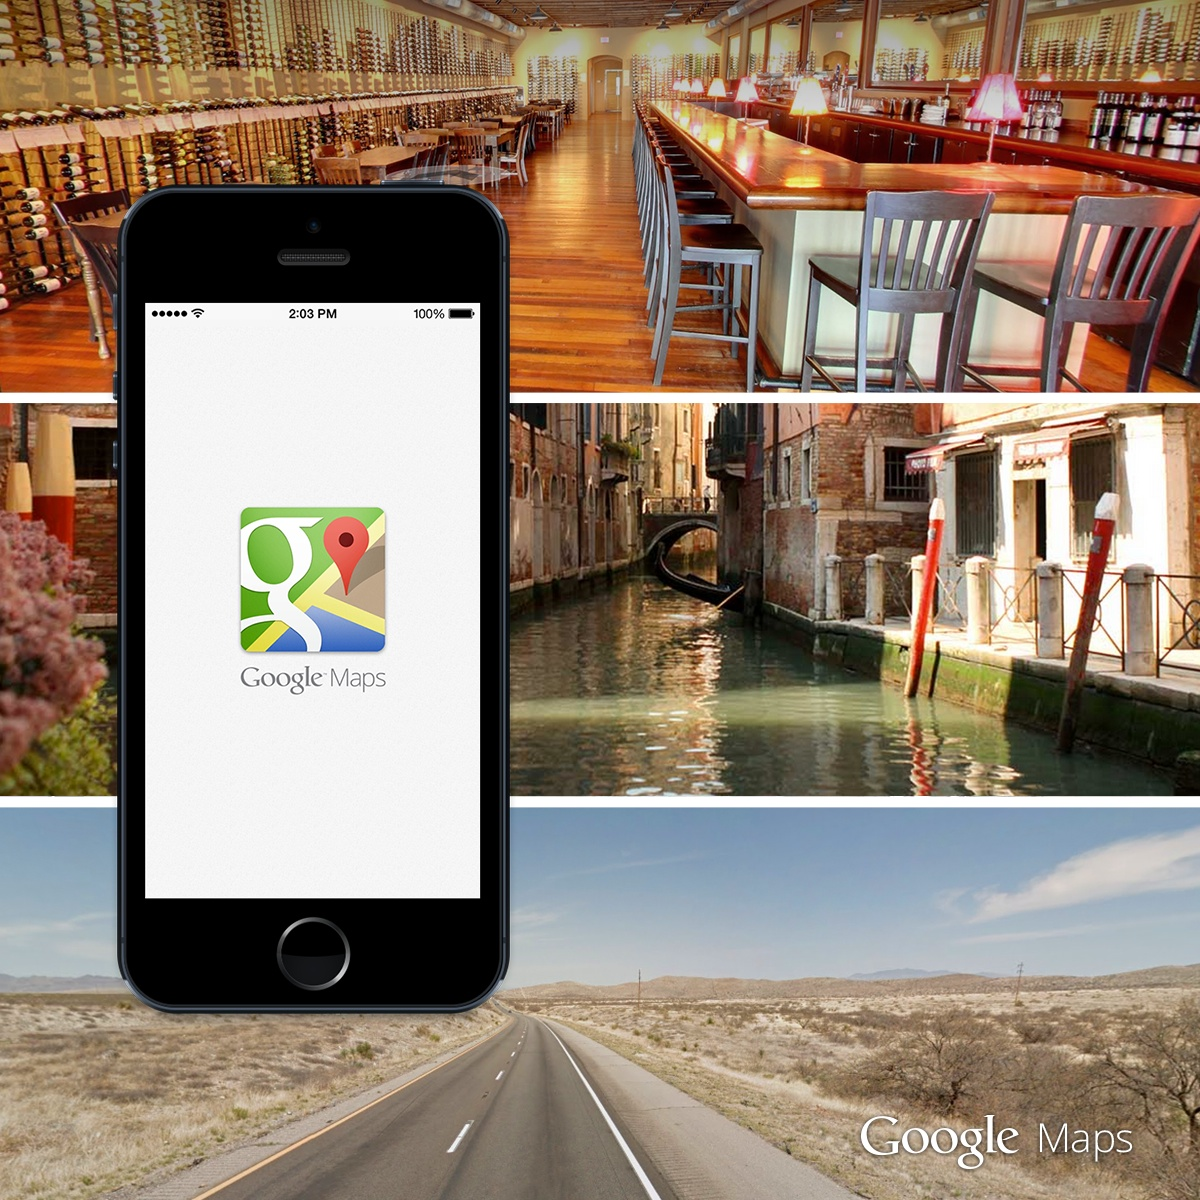 Google Updates Maps for Android, iOS with new 'Explore' Feature